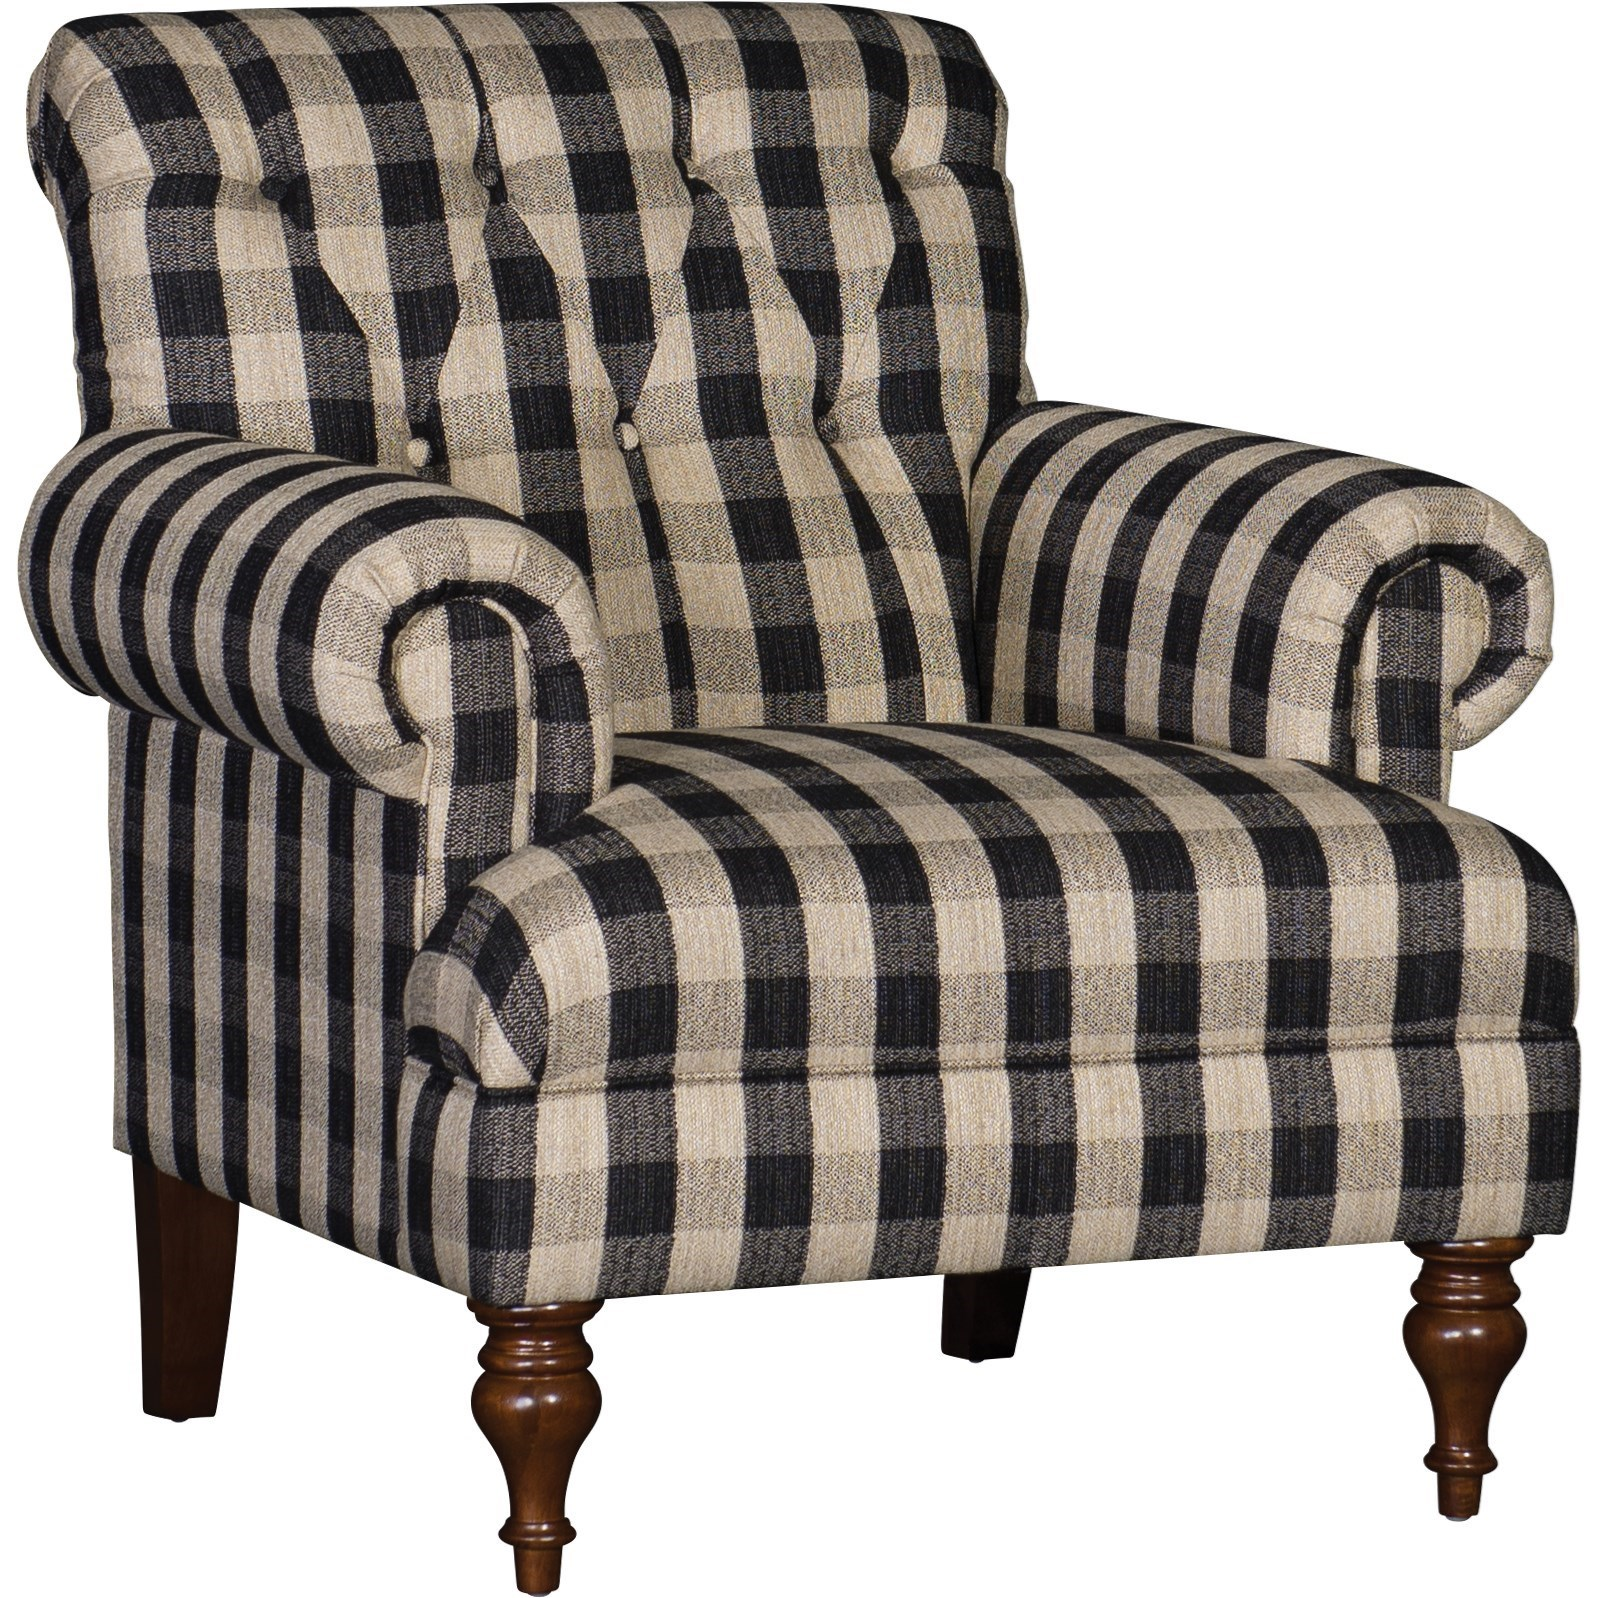 3419 Tufted Back Chair by Mayo at Wilcox Furniture